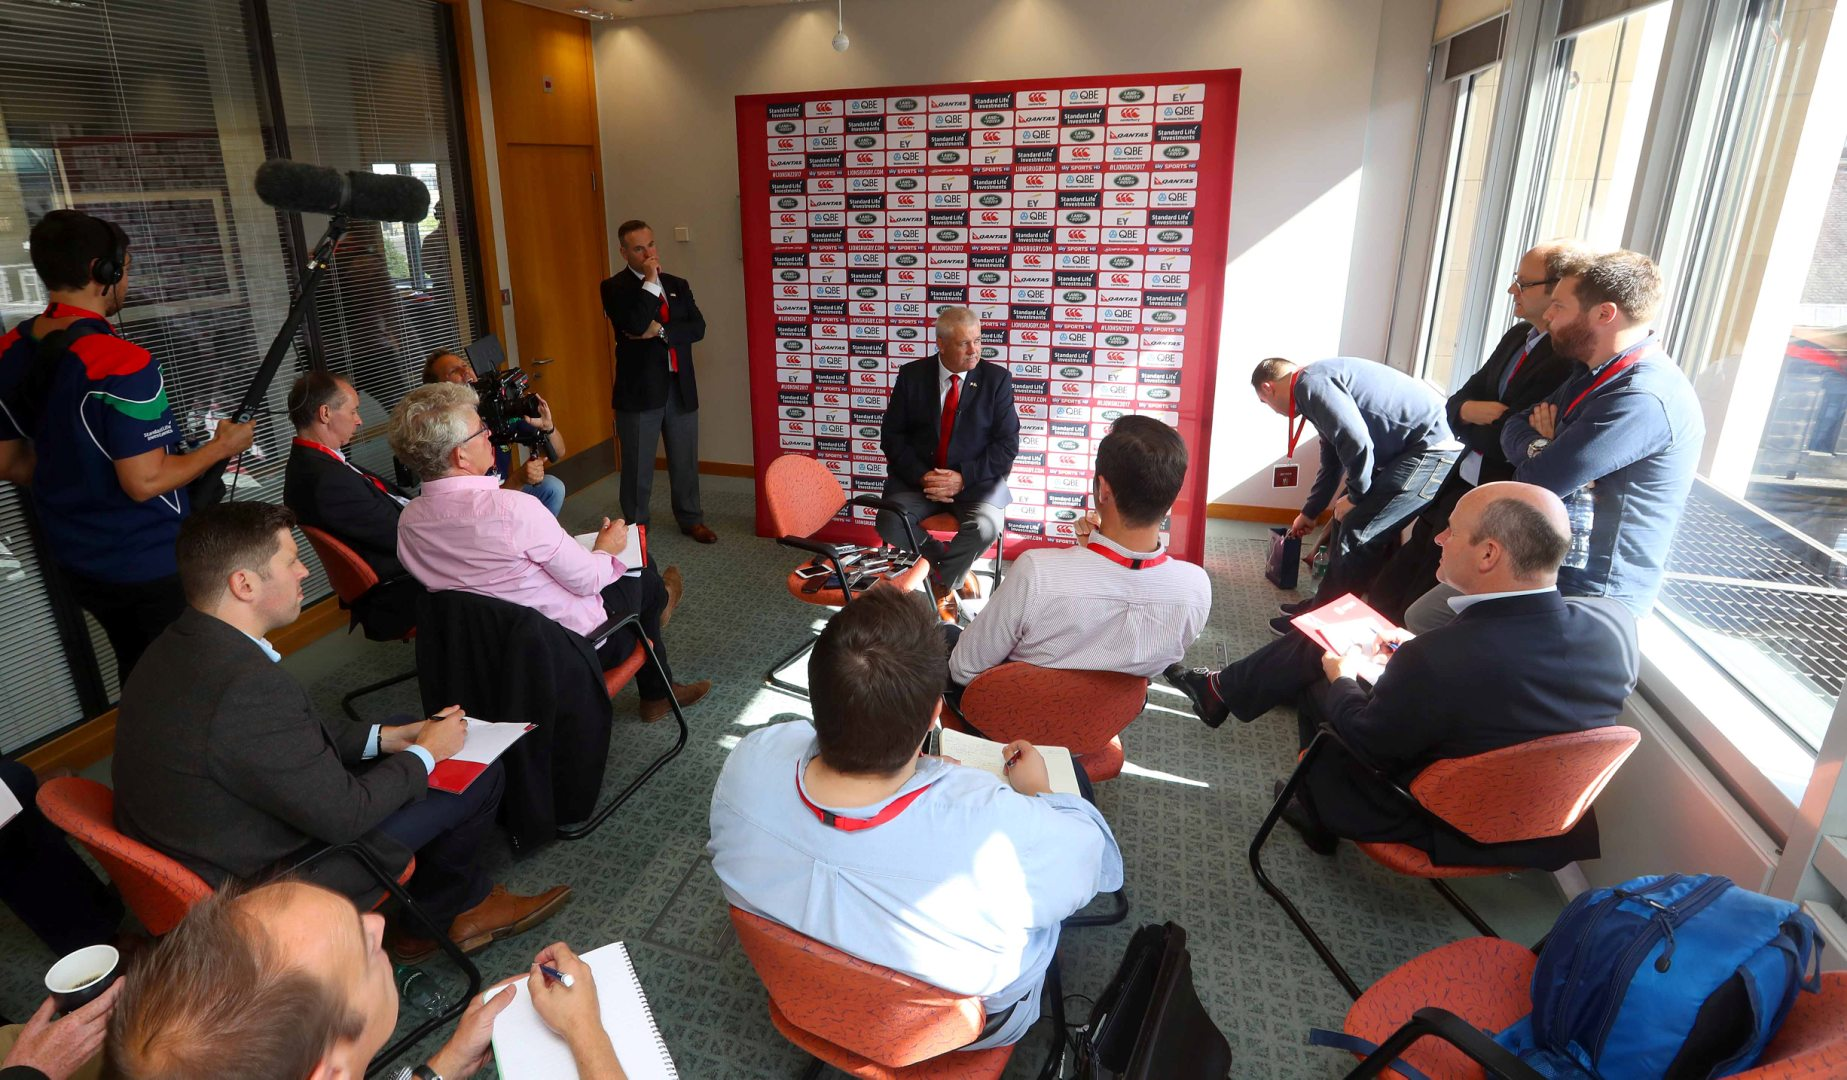 Gatland unveiled: The press reacts